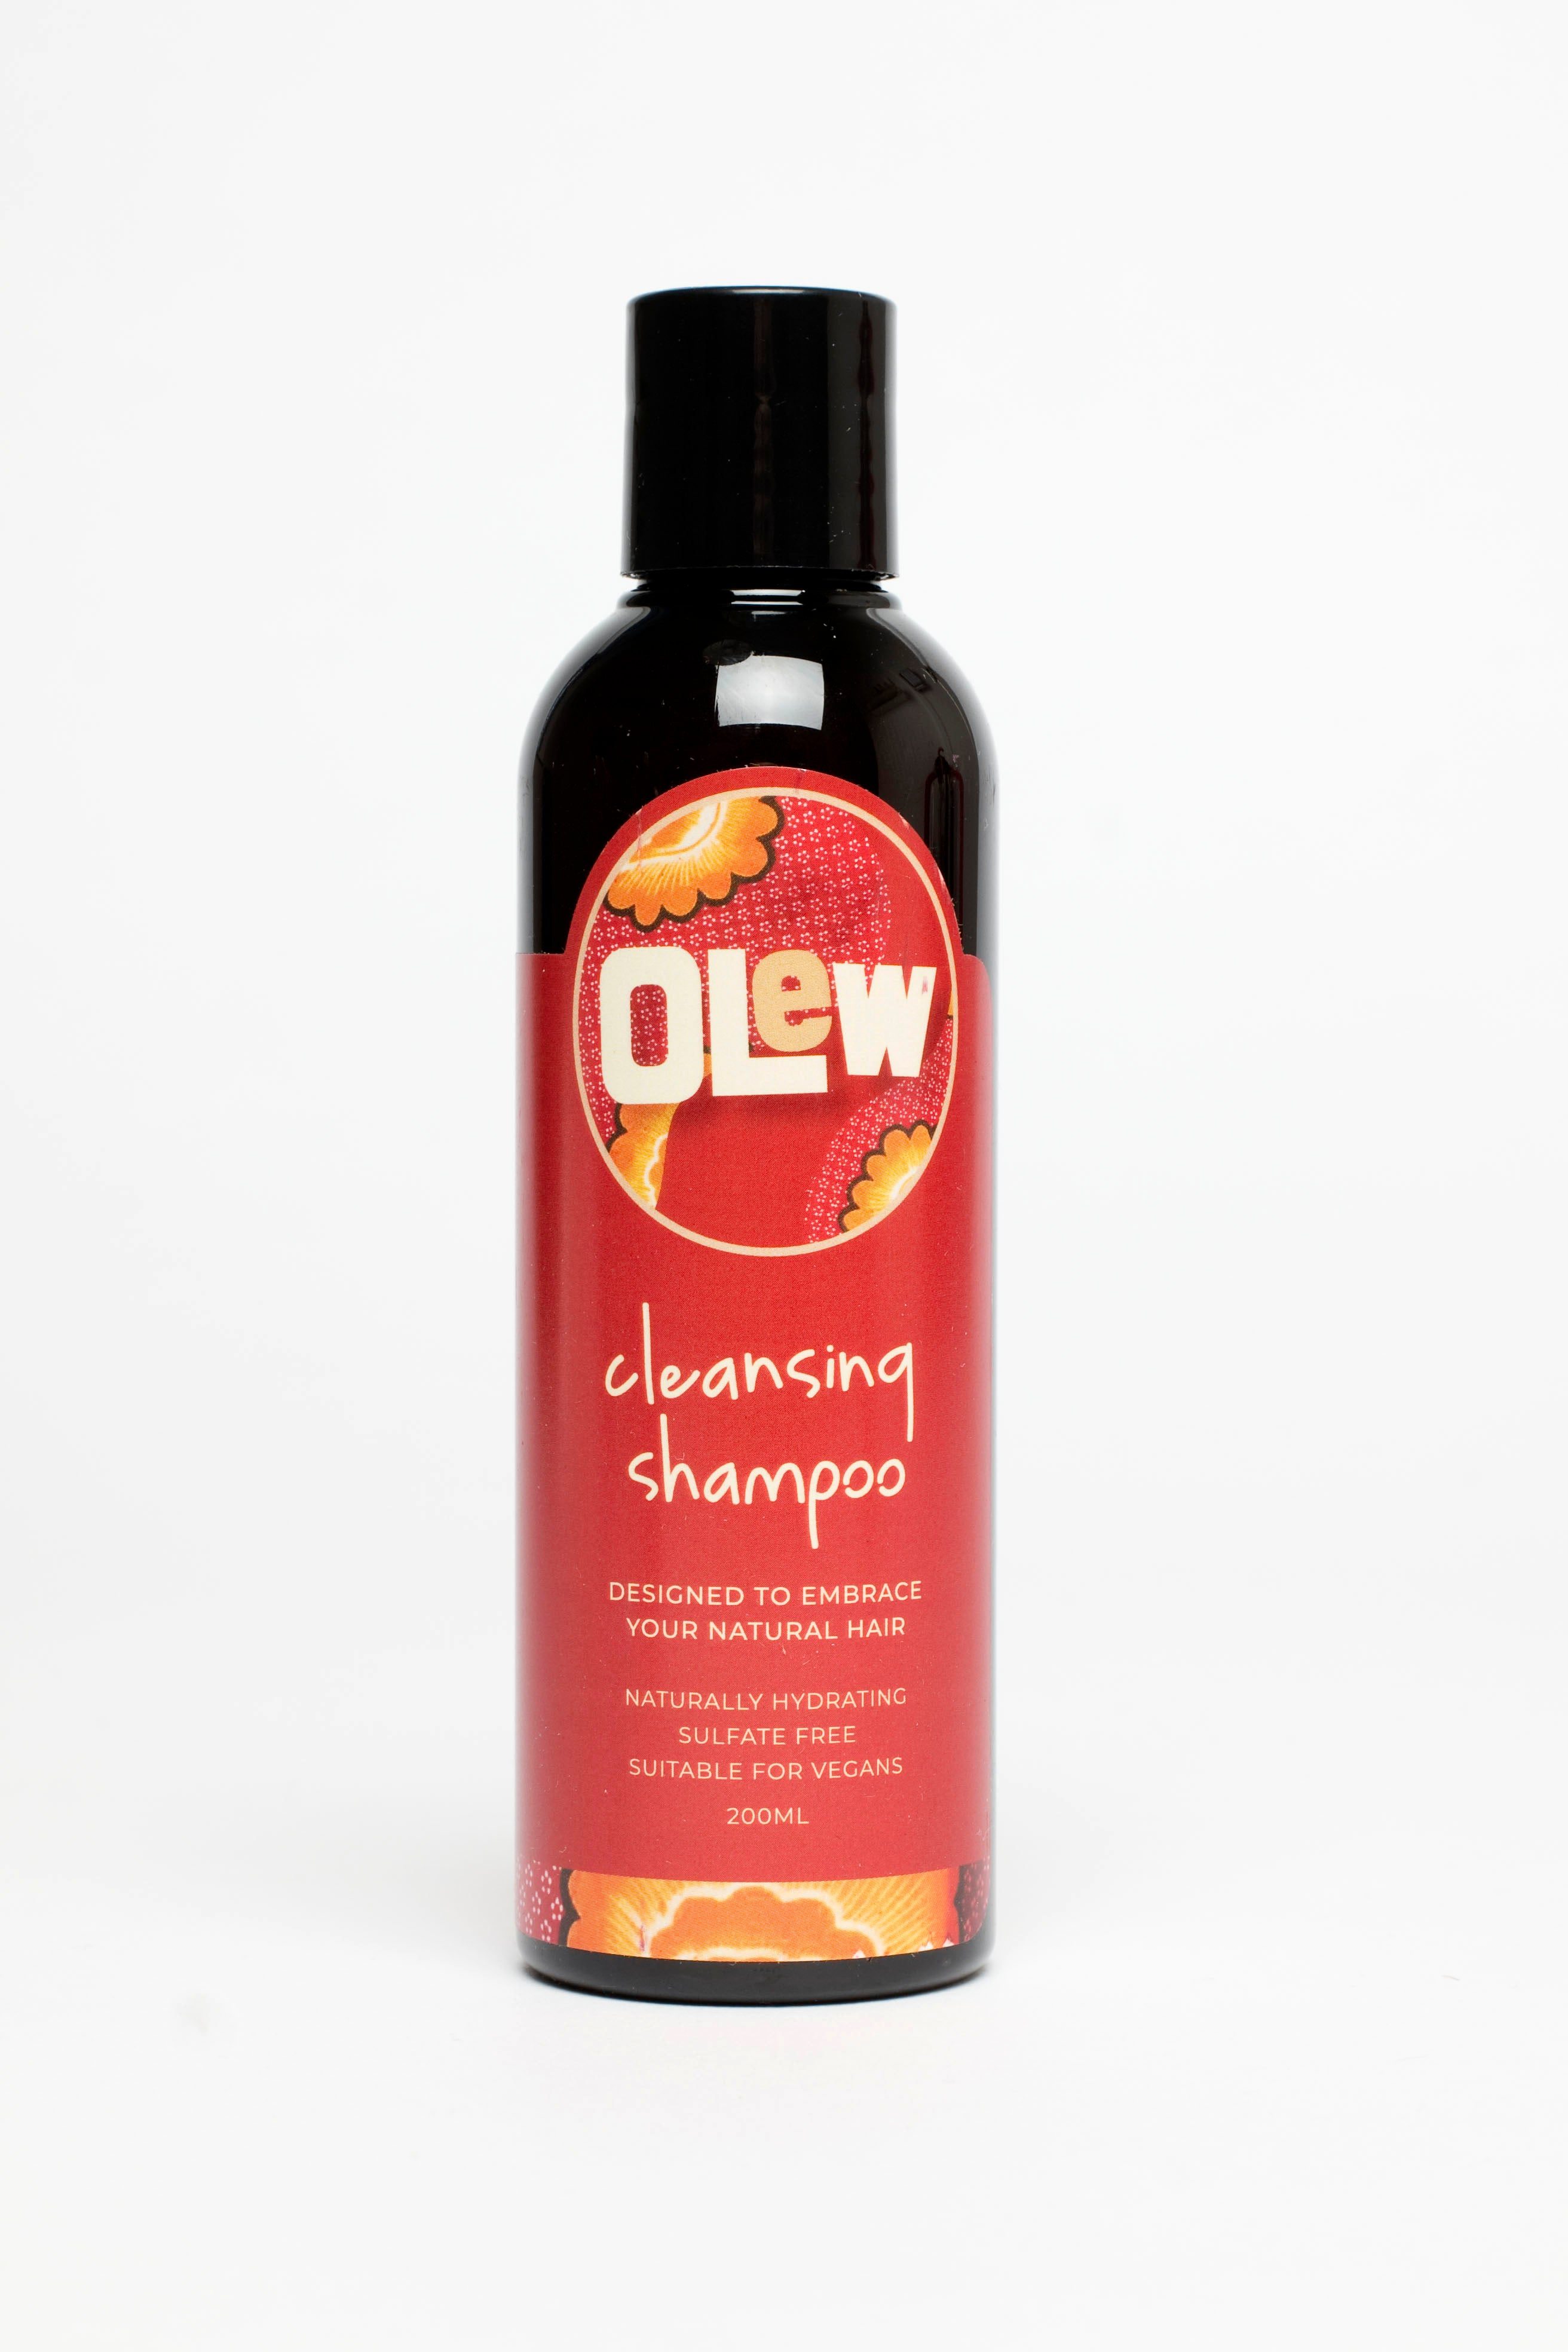 Olew Cleansing Shampoo.